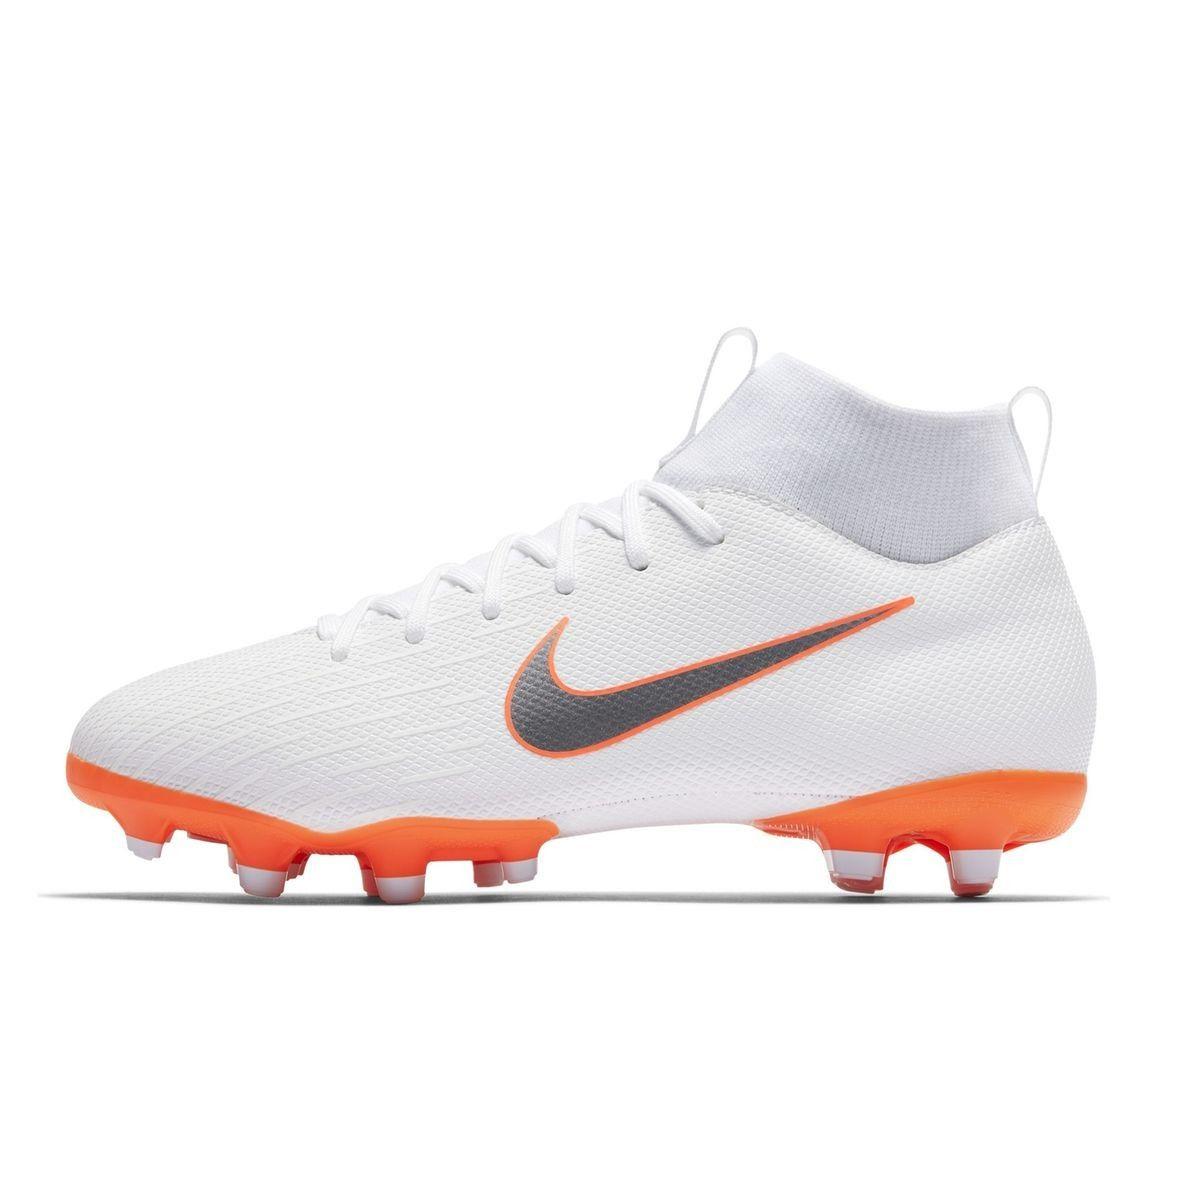 on sale 8b41c c7d1d Chaussures Football Nike Mercurial Superfly Vi Academy Df Mg Blanc Junior -  Taille : 35;